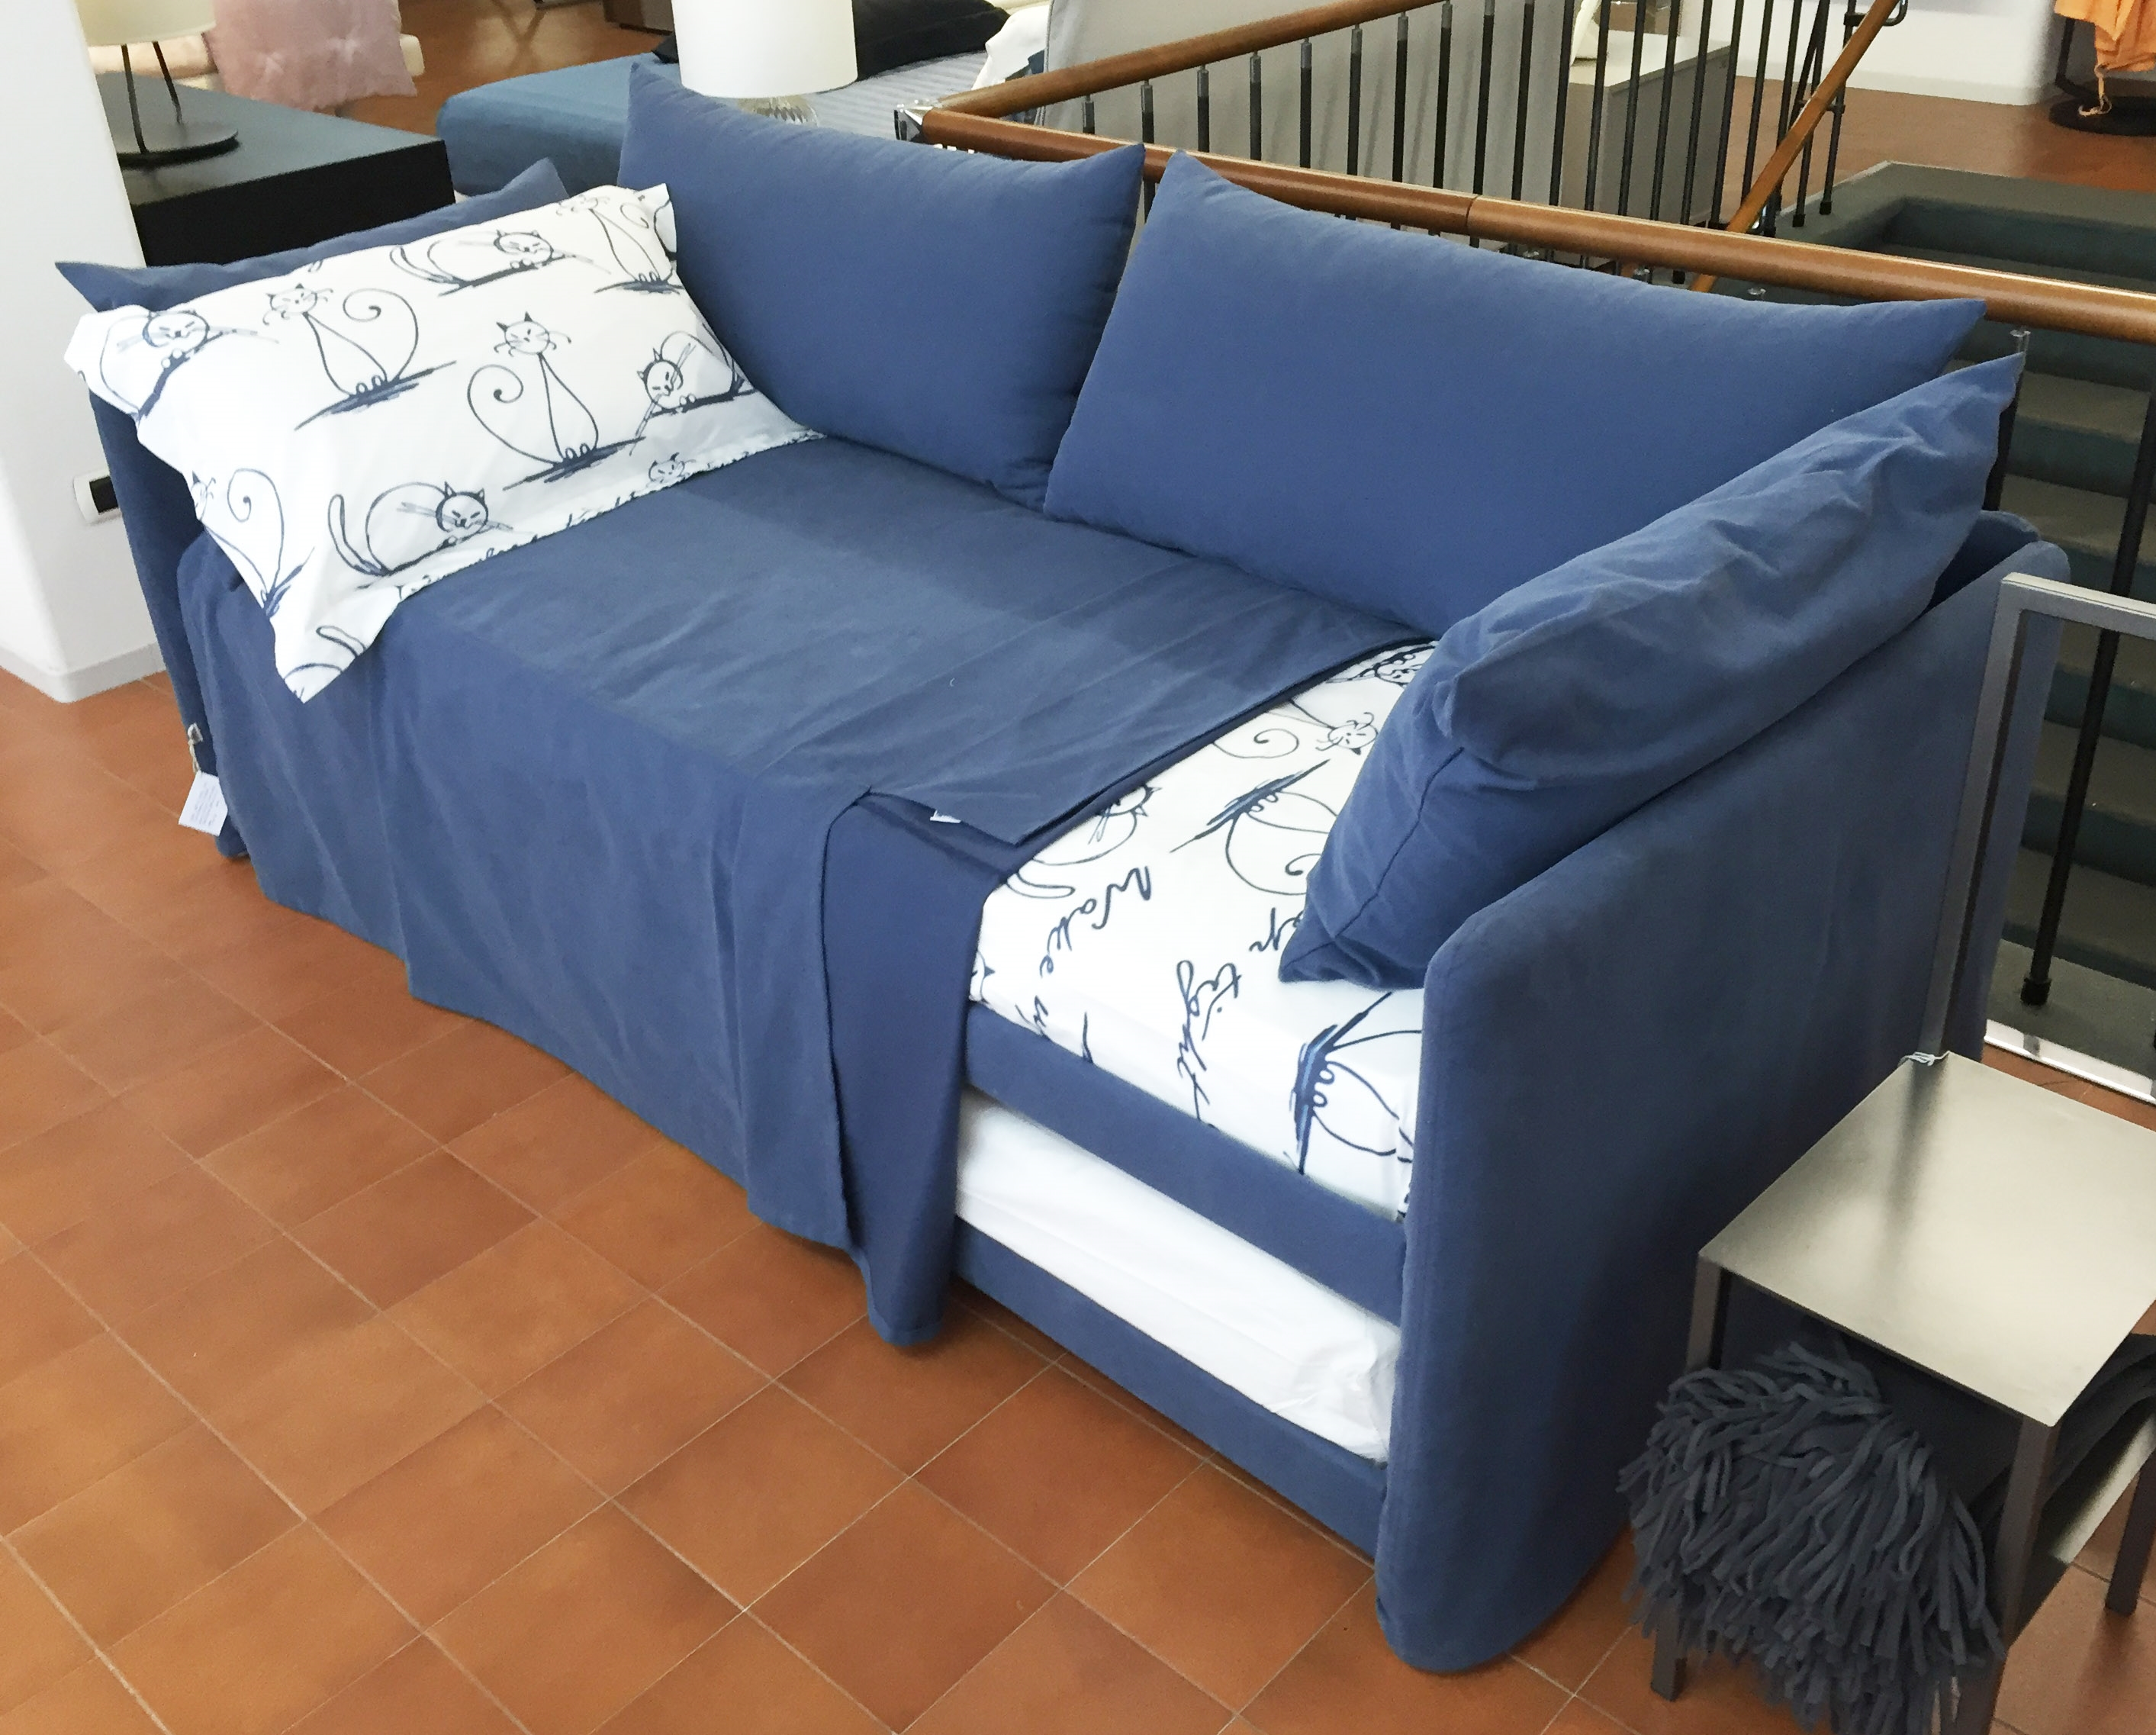 Flou Duetto. Amazing Flou Beds And Sofas With Flou Duetto. Fabulous ...